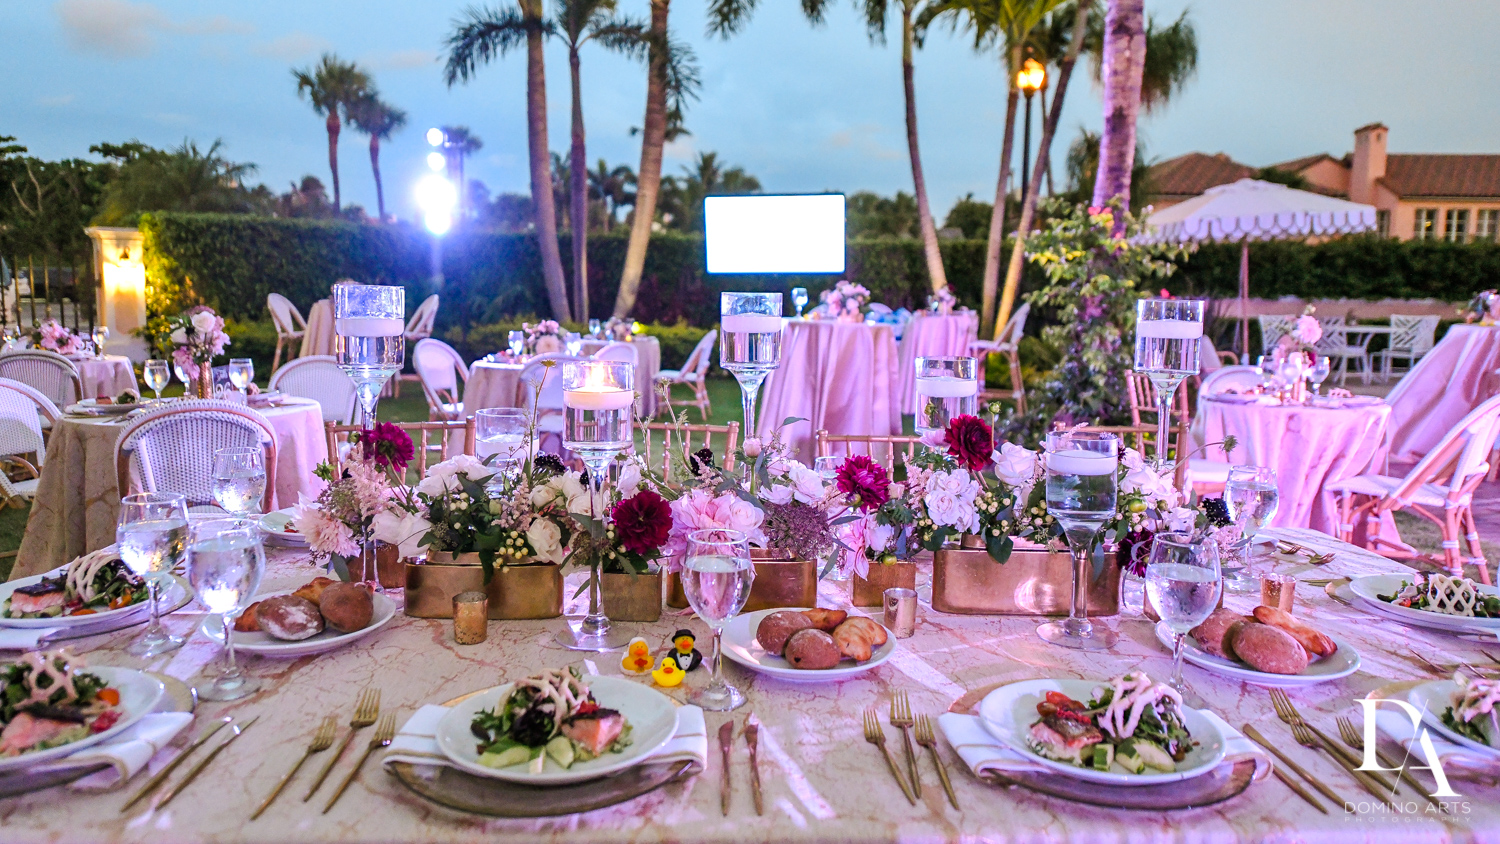 decor by artistique events at Luxury Summer Wedding at The Colony Hotel Palm Beach by Domino Arts Photography